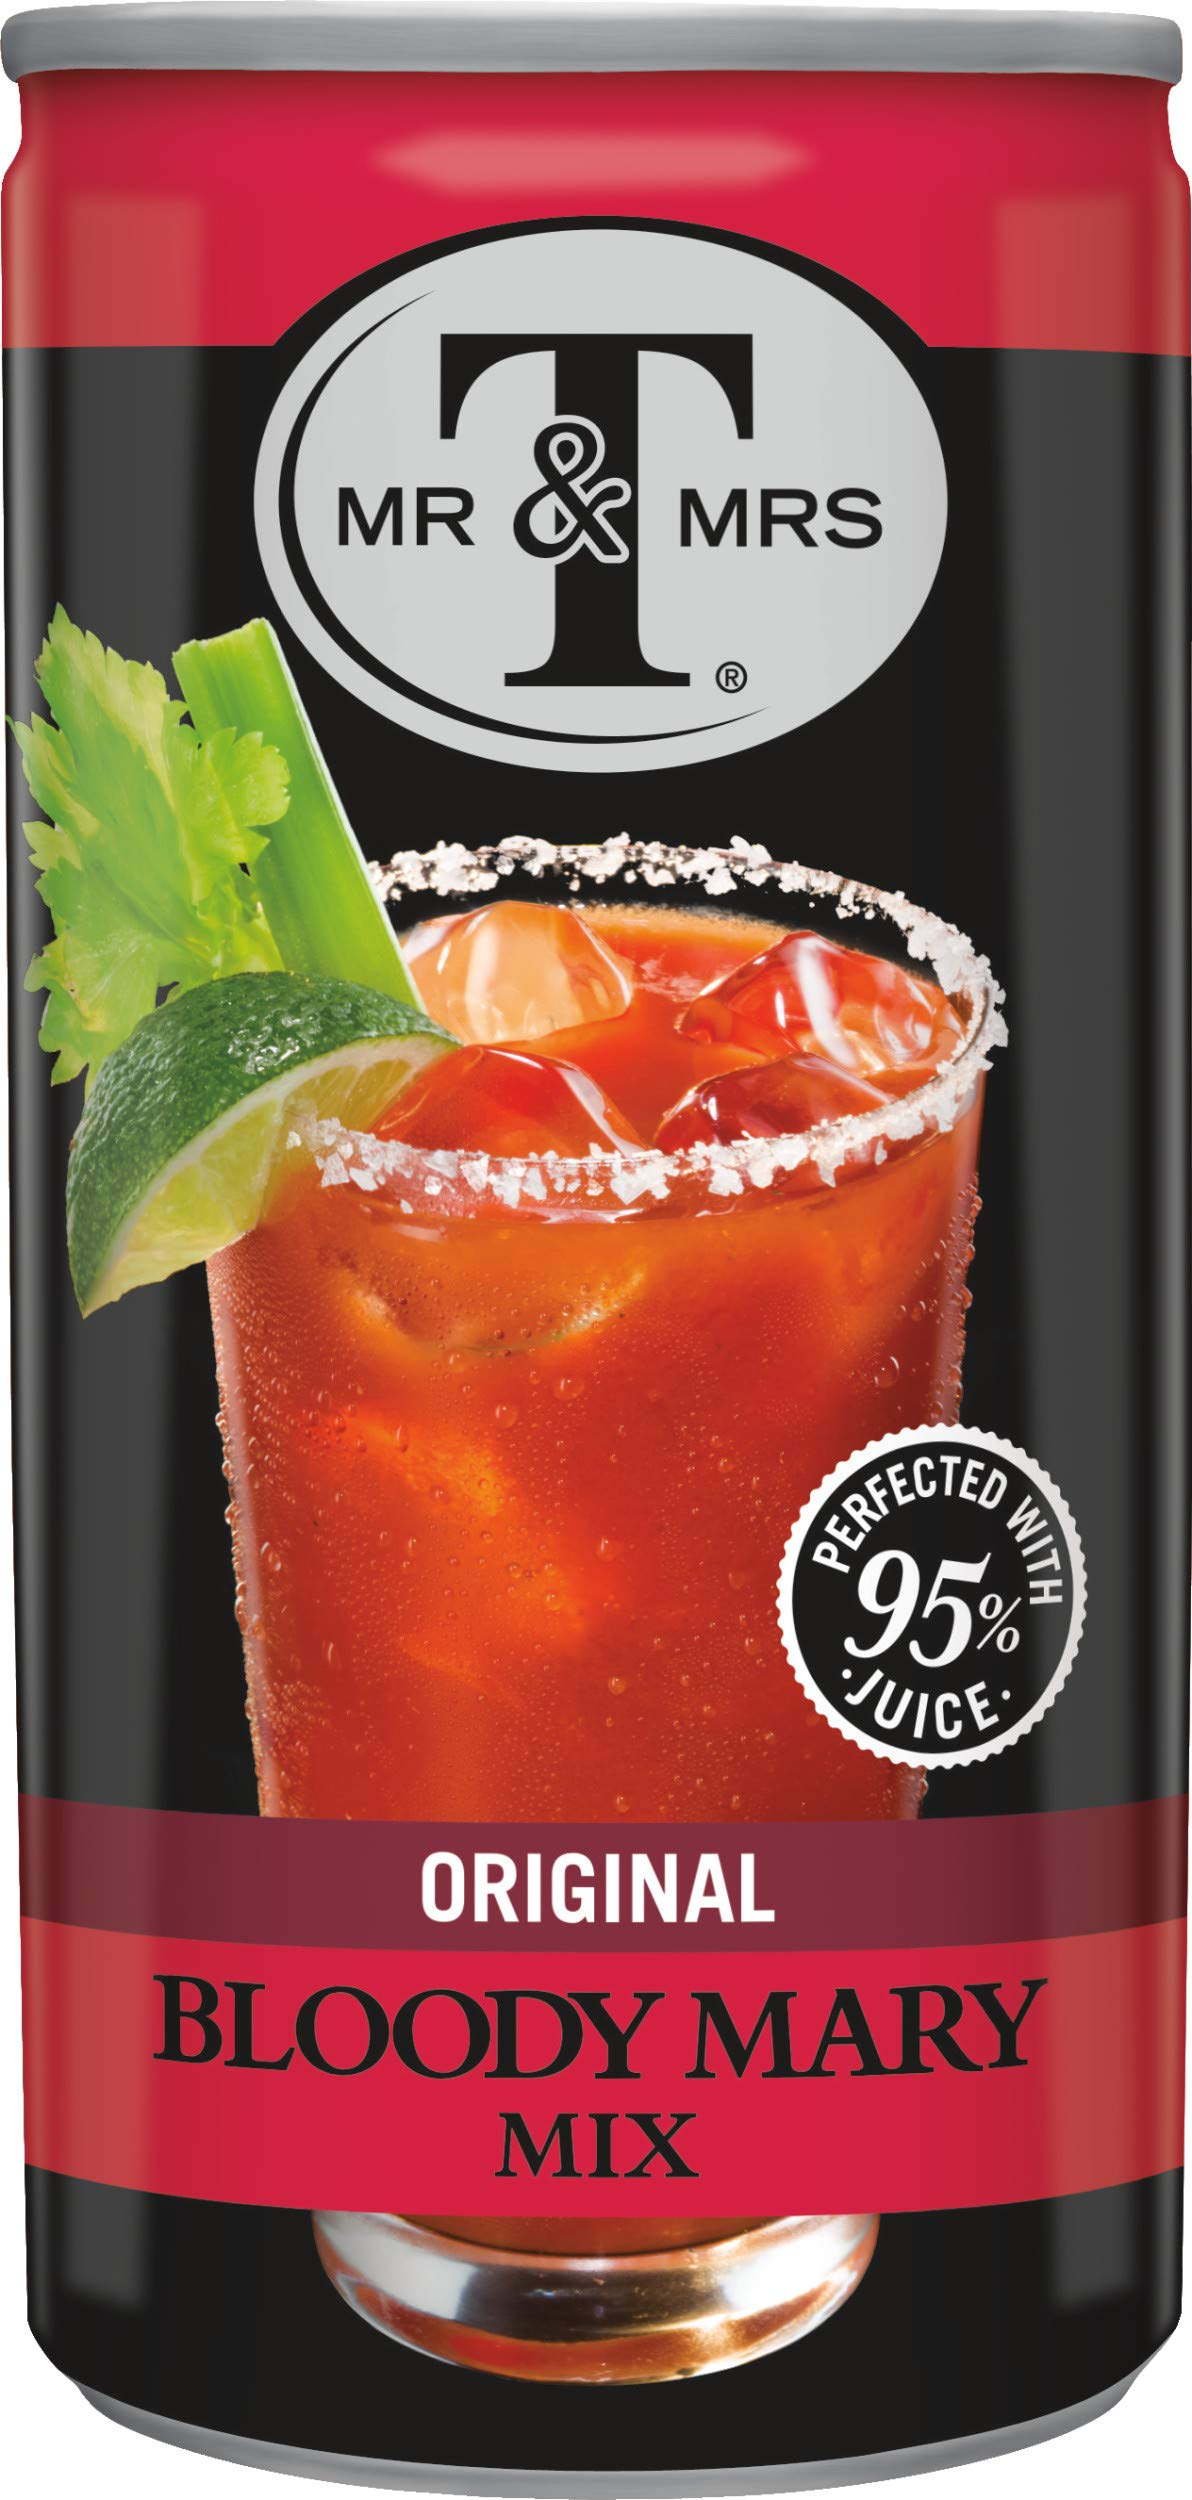 Mr & Mrs T Original Bloody Mary Mix, 5.5 Fluid Ounce Can, 24 Count by Mr. & Mrs. T (Image #1)